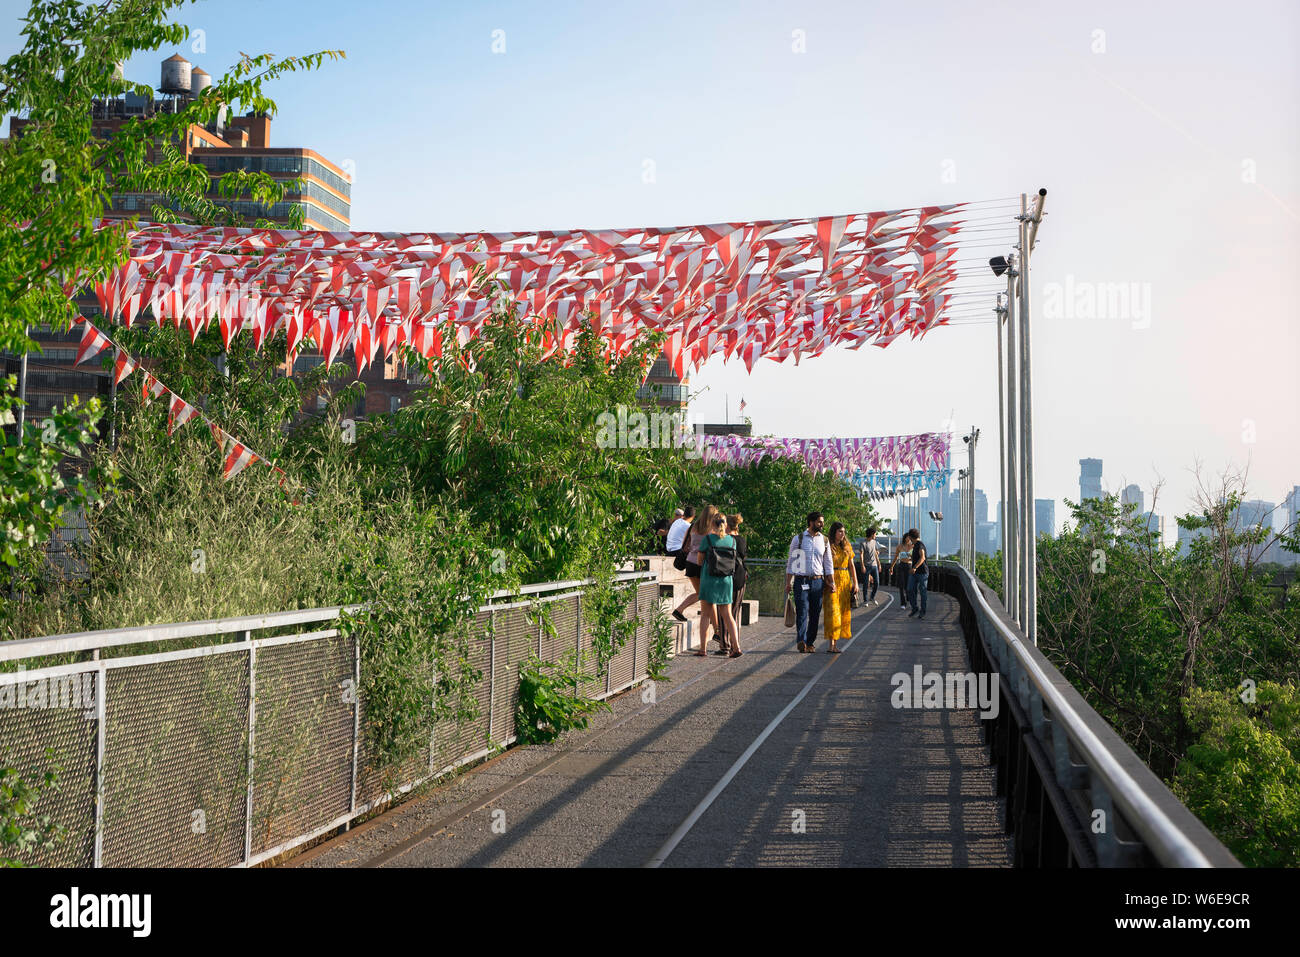 Chelsea High Line, view of people on a summer evening walking the High Line park in the Chelsea neighborhood of Manhattan, New York City, USA. Stock Photo